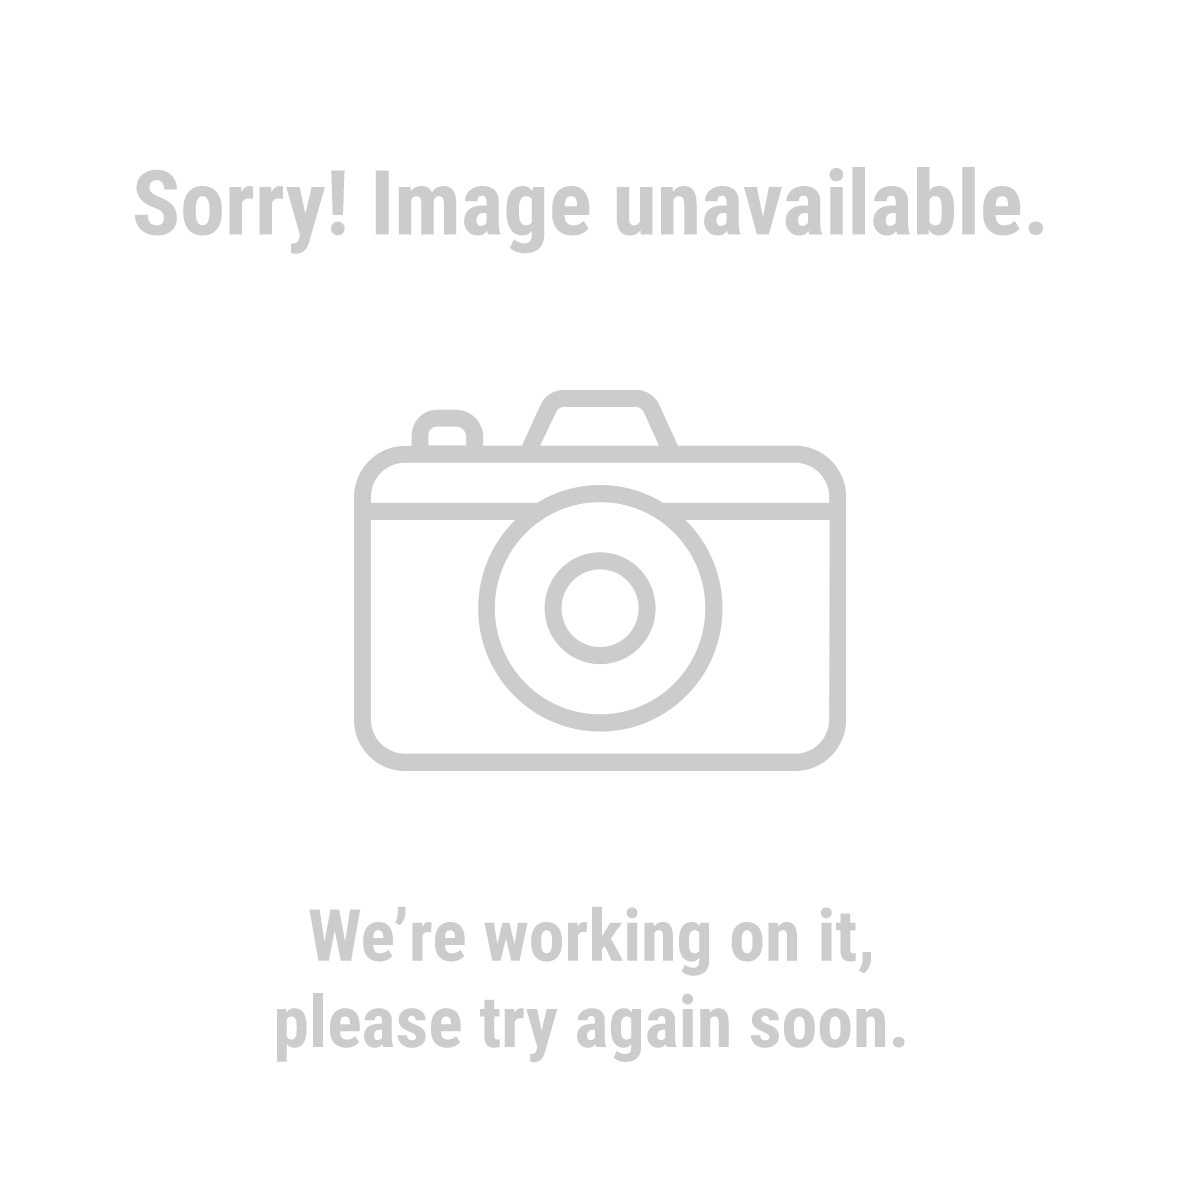 Pittsburgh® 3838 9 Piece Hollow Punch Set